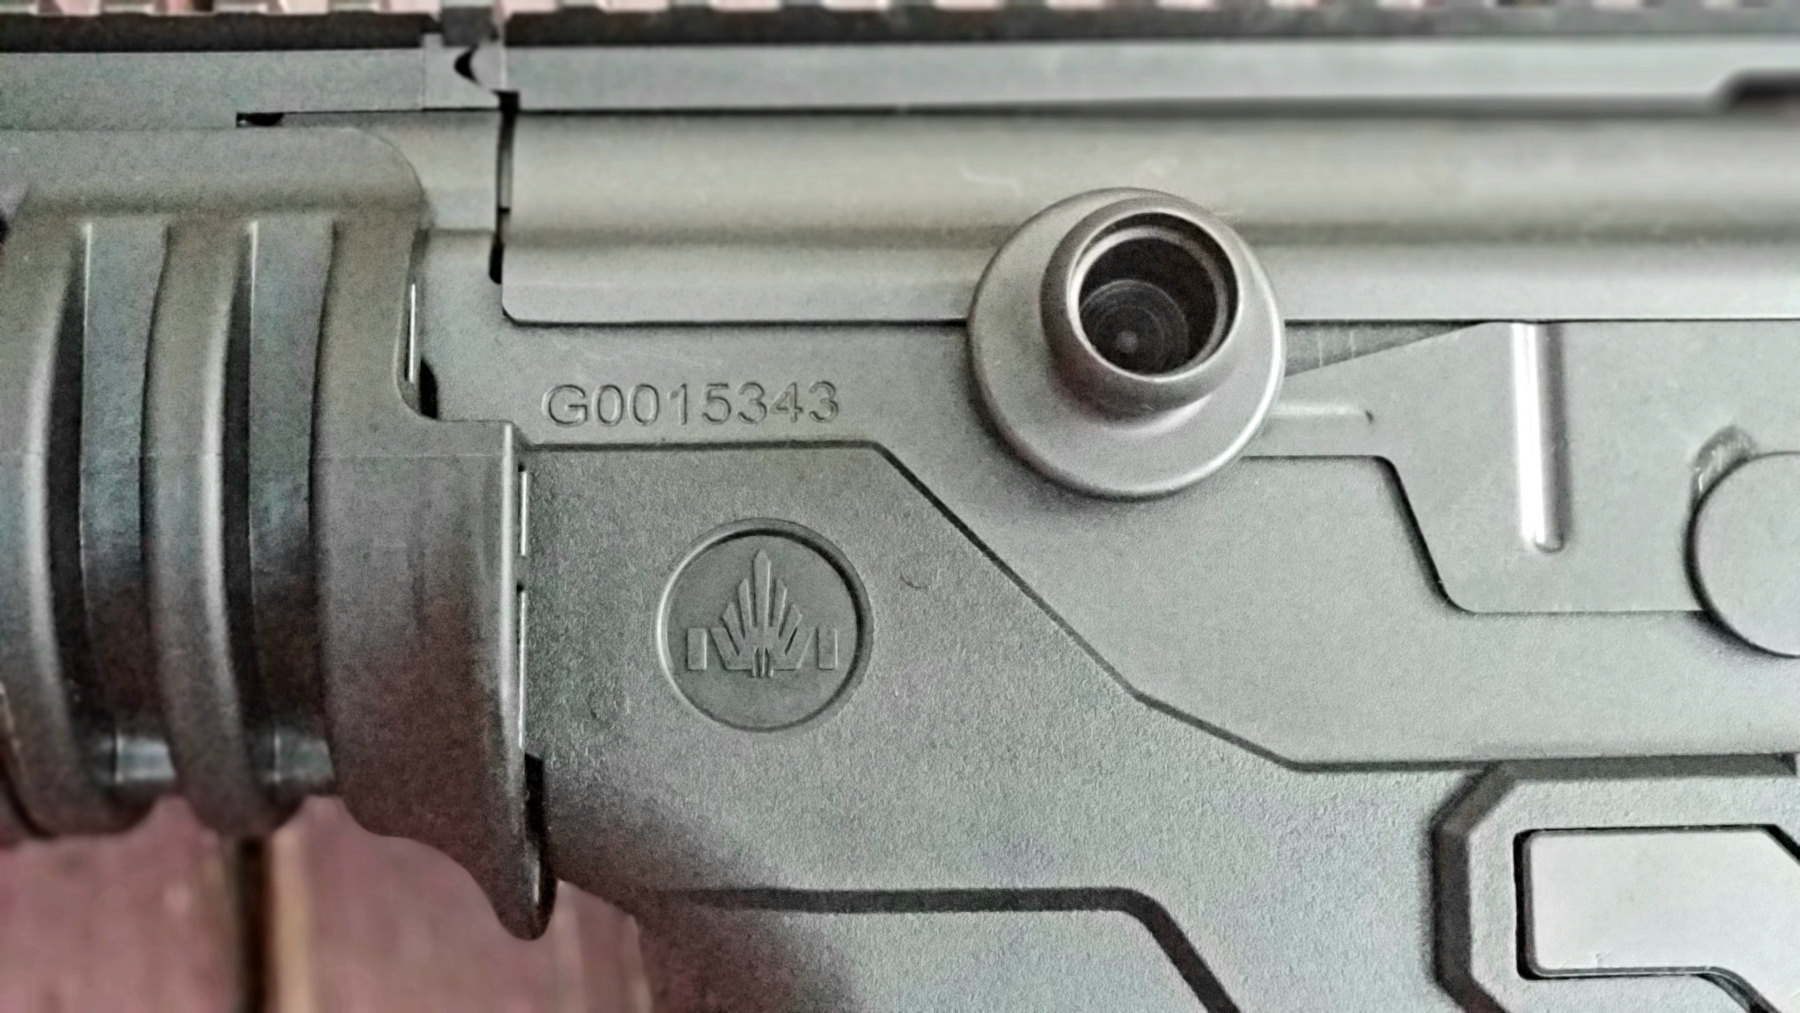 The charging handle is a hollow tube to reduce weight